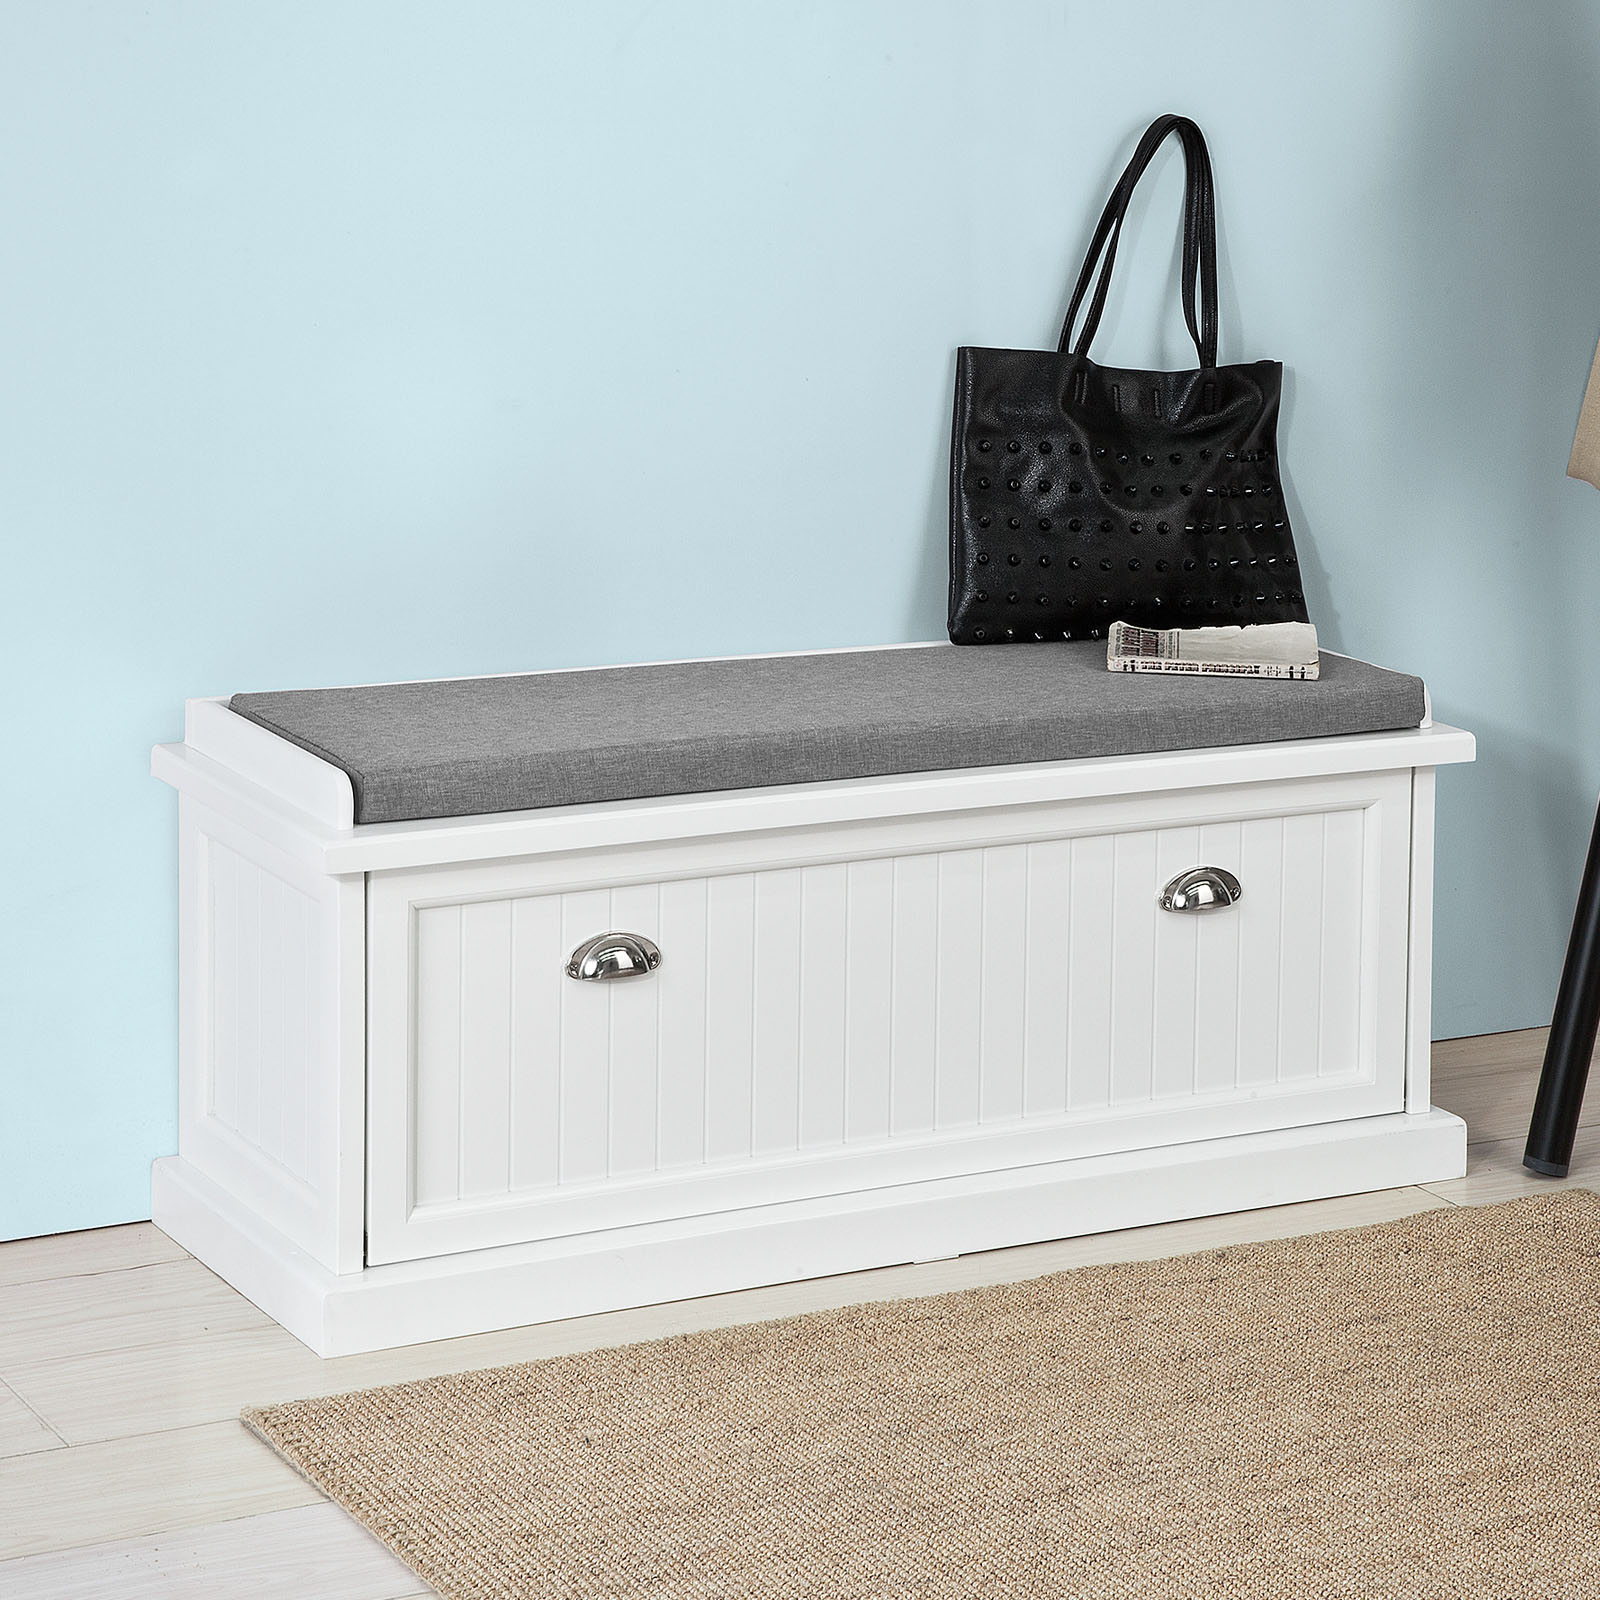 Picture of: White Storage Bench With Removable Seat Cushion Bench With Storage Chest Shoe Cabinet Shoe Bench Walmart Com Walmart Com